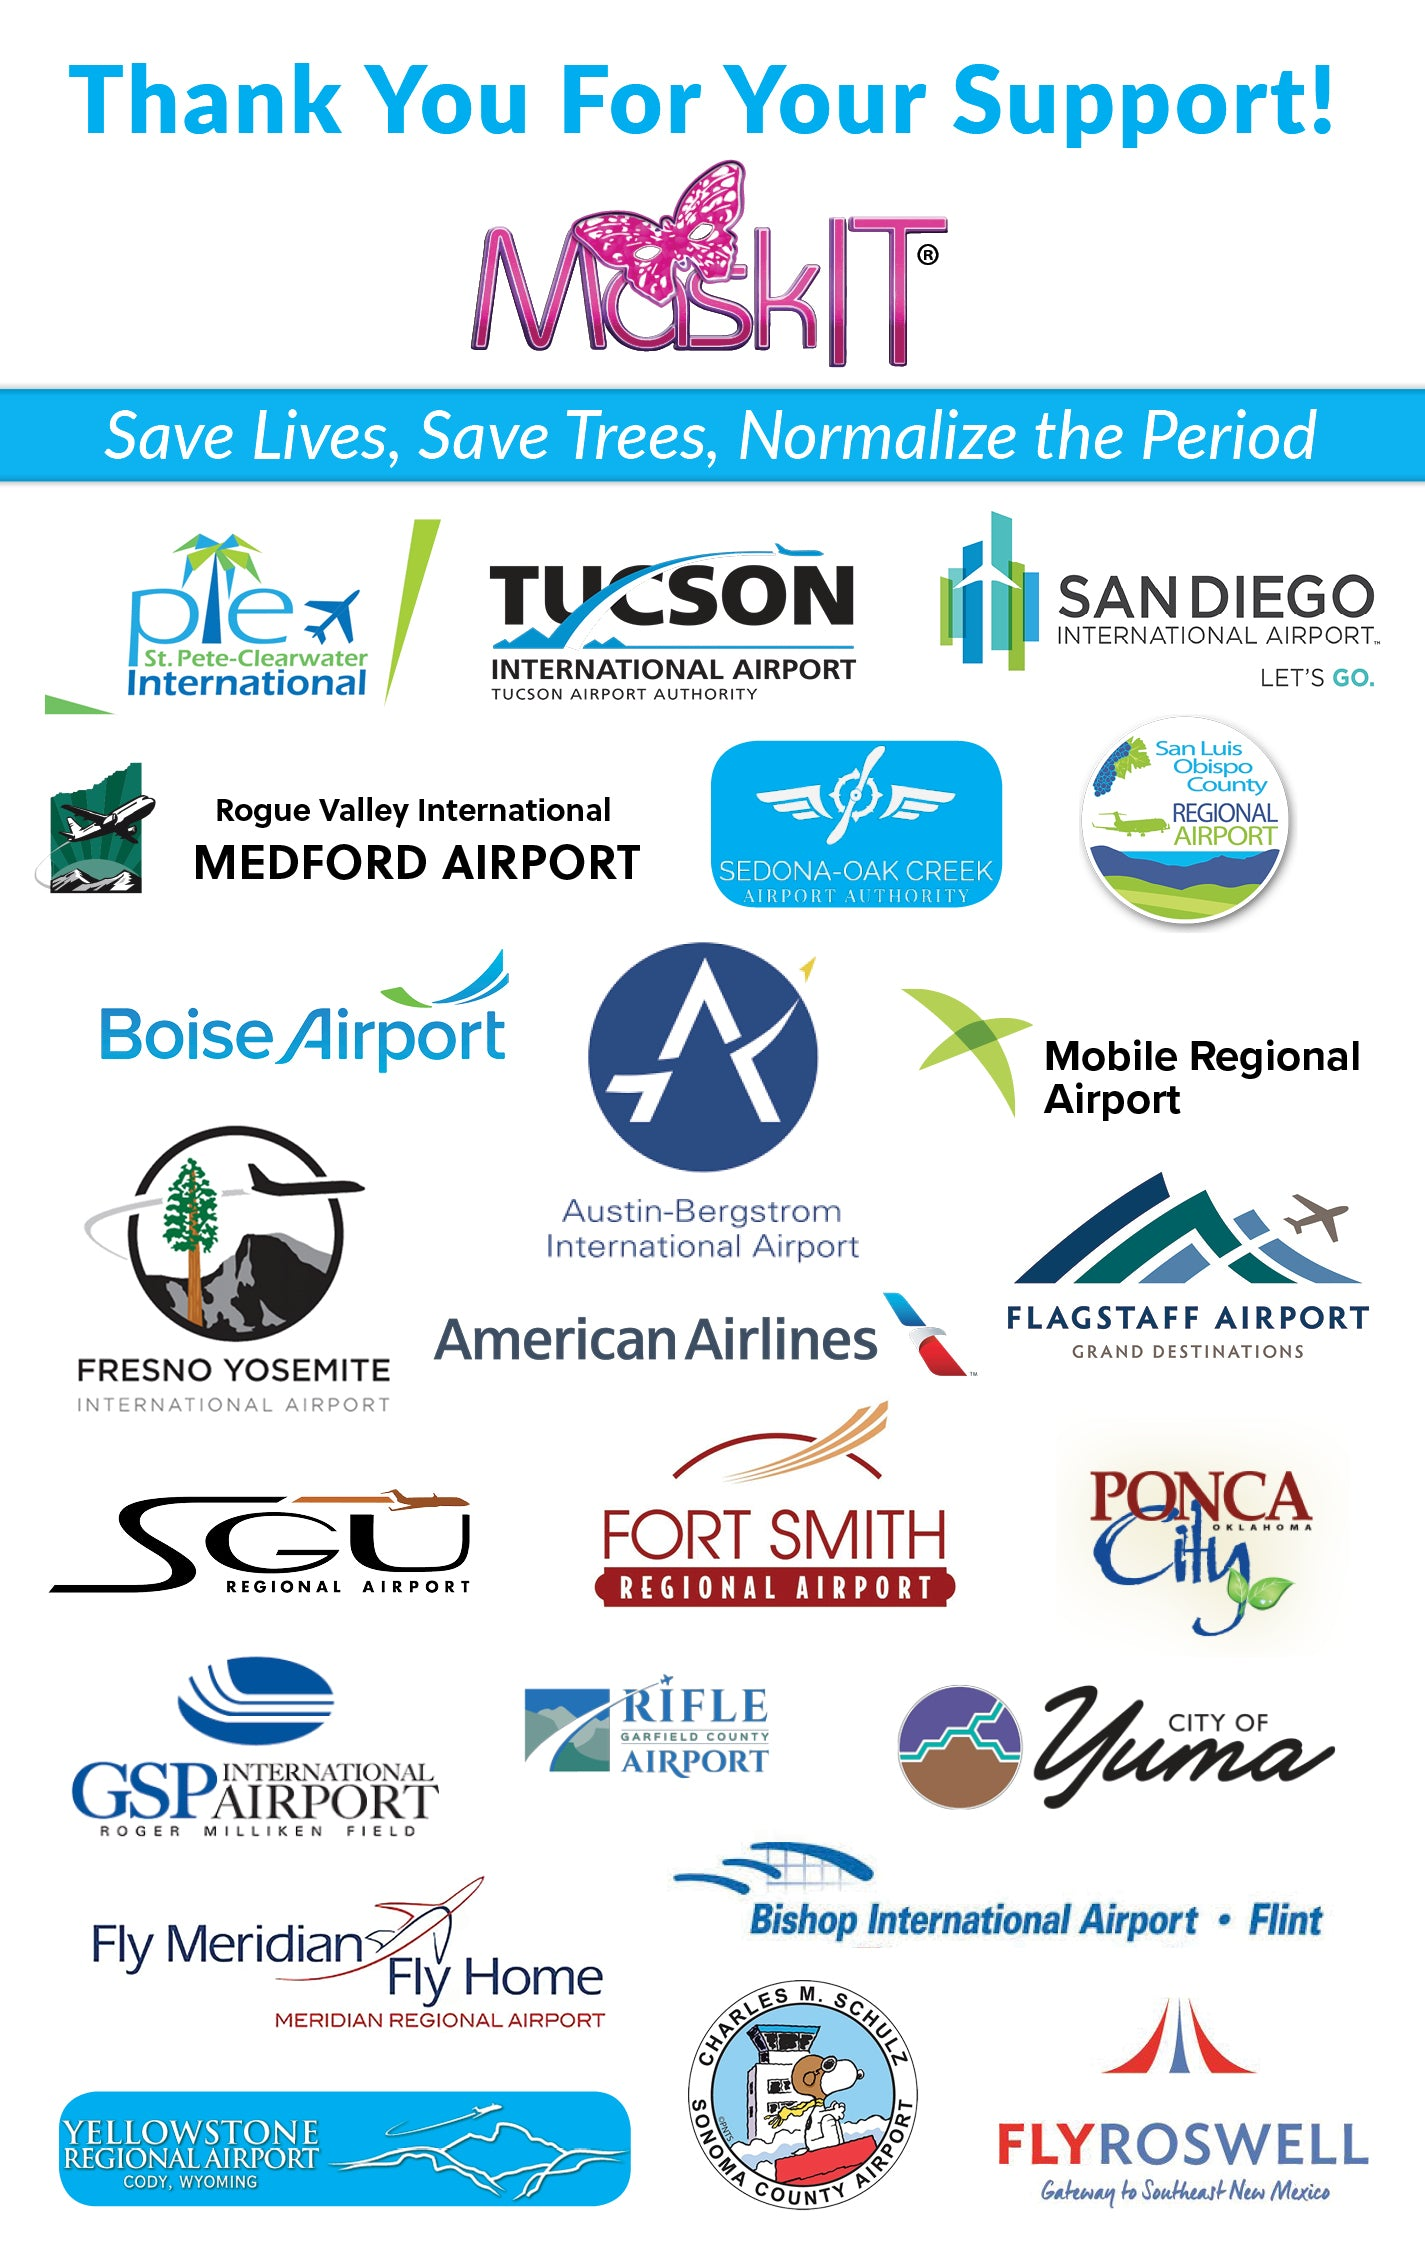 Thank you to all of the Airports who have fully or partially implemented MaksIT!